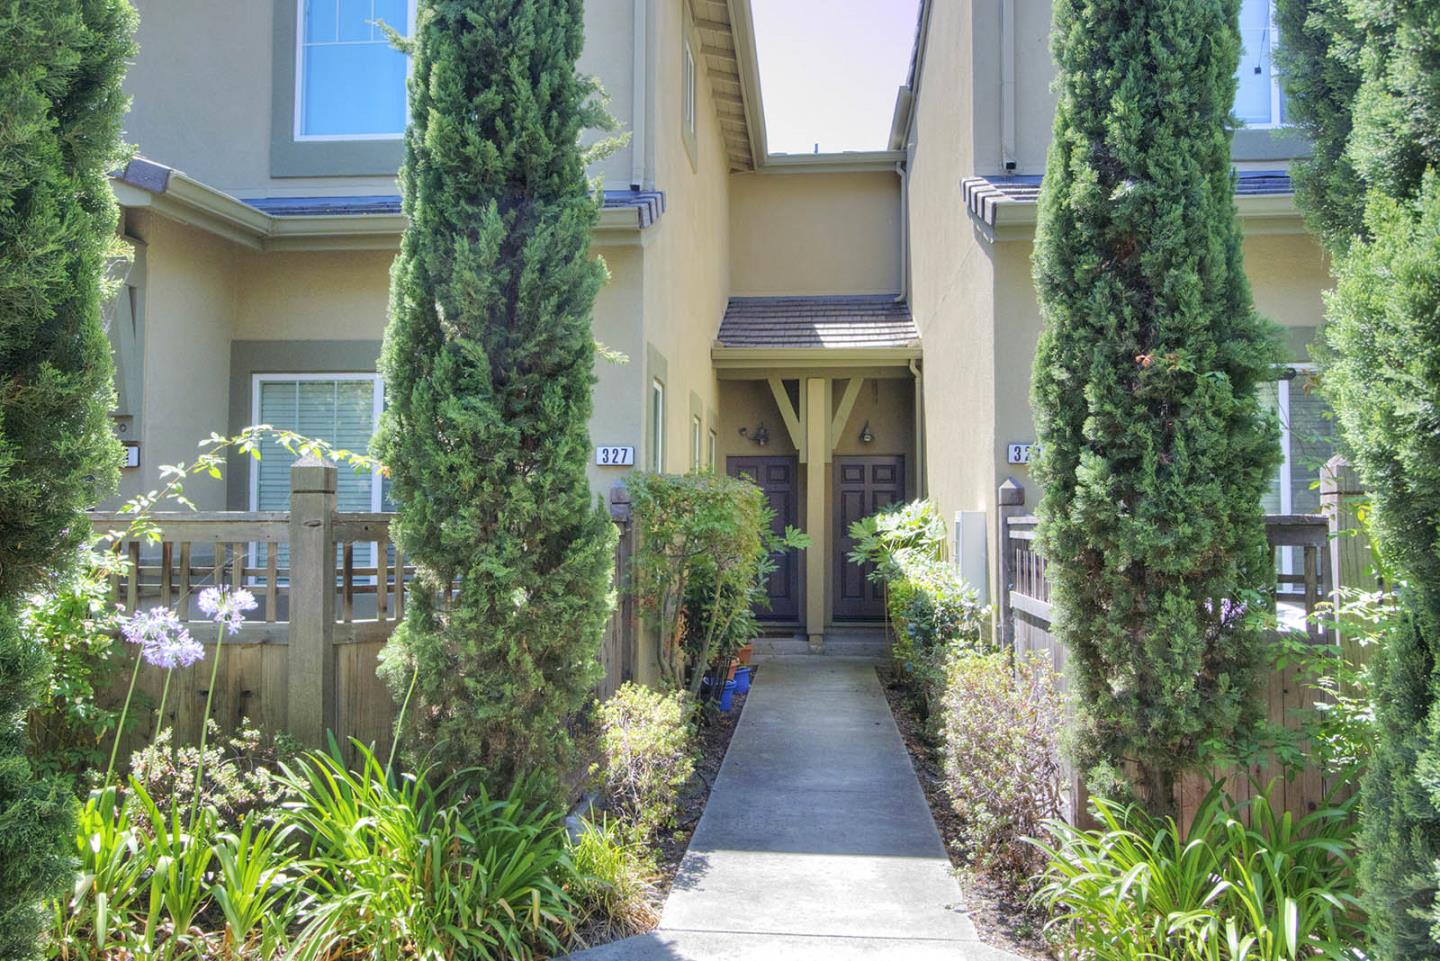 Townhouse for Sale at 327 Celebration Drive Milpitas, California 95035 United States